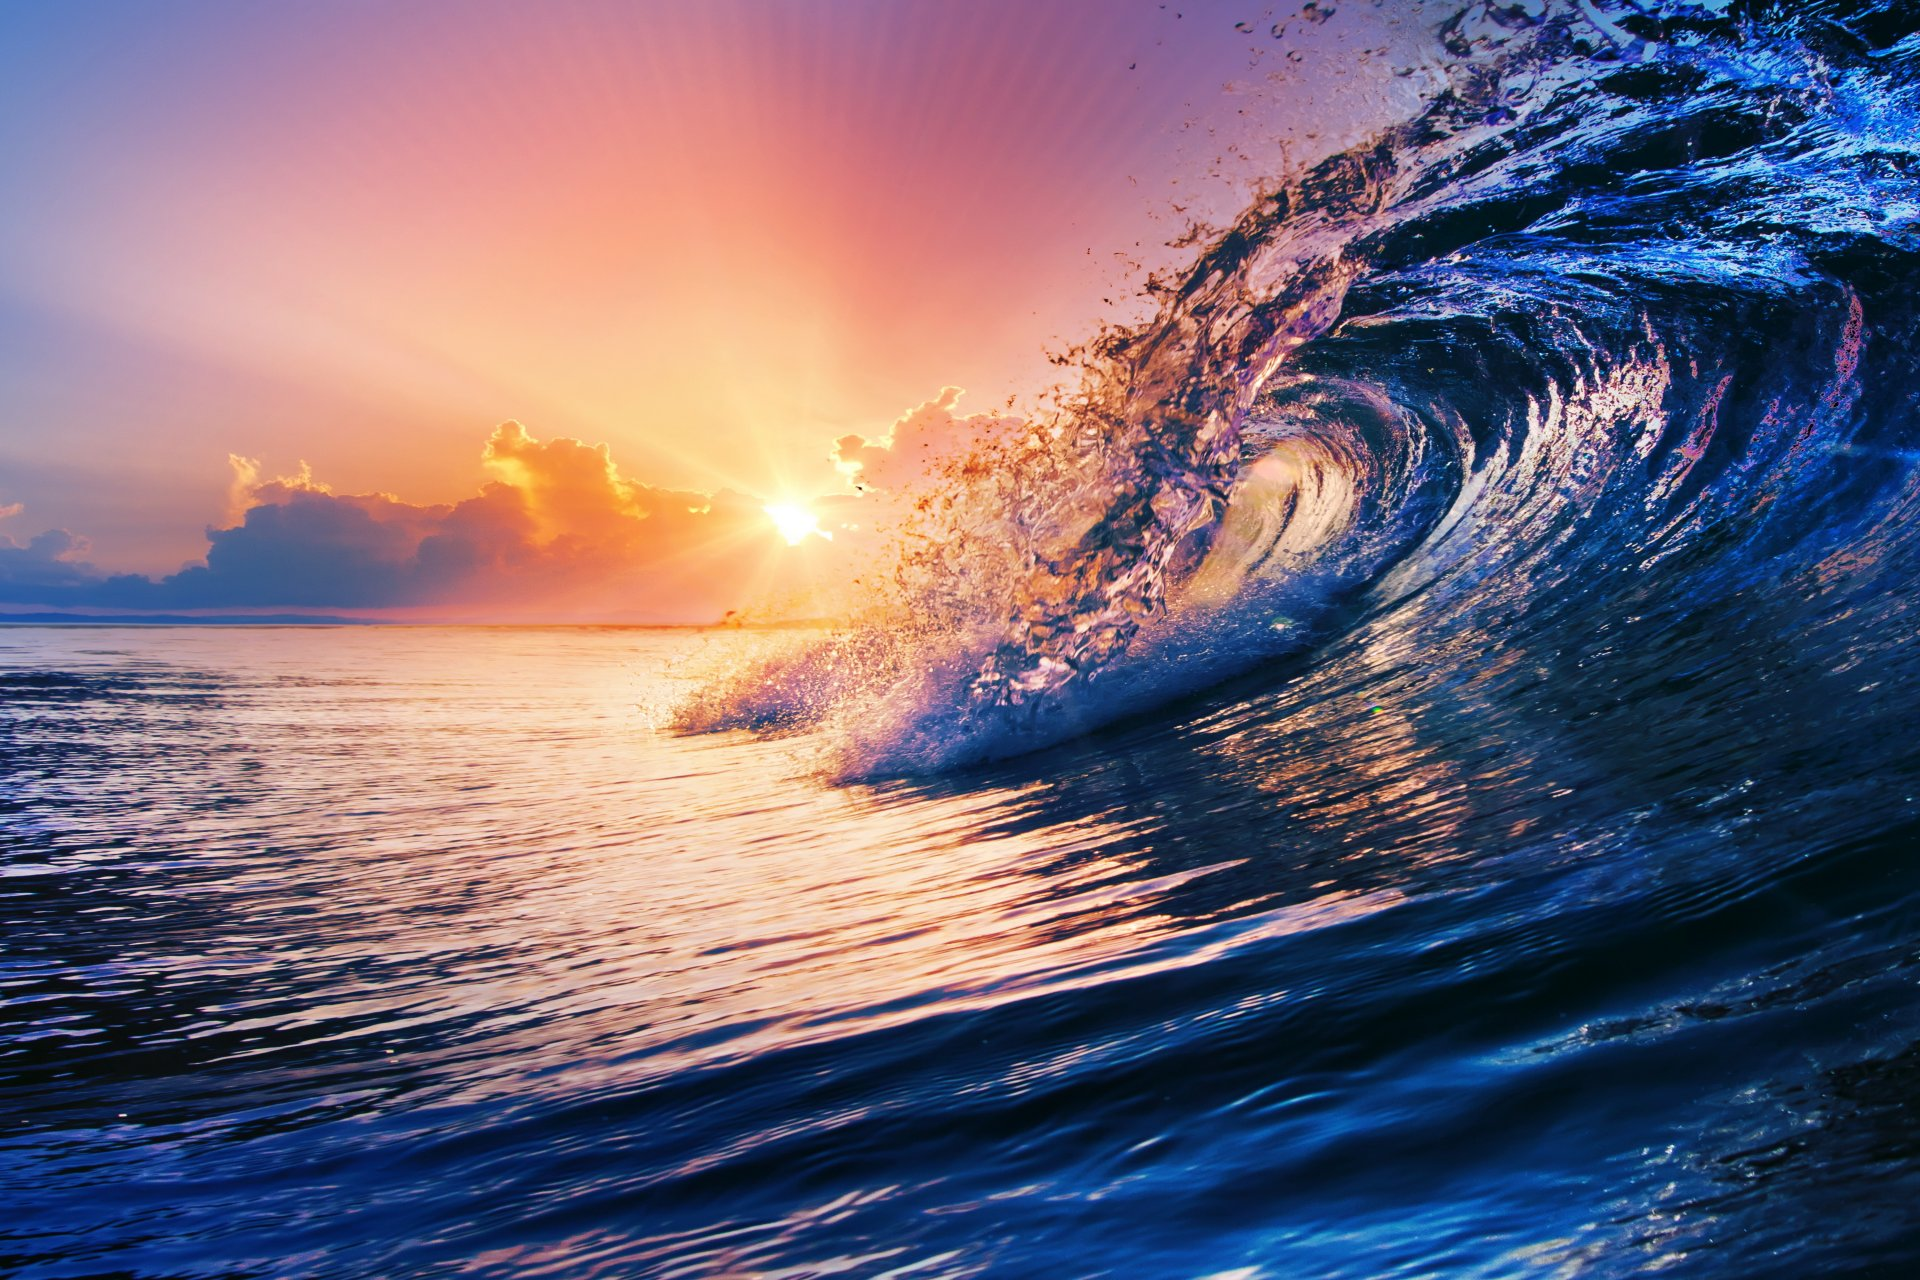 https://w-dog.ru/wallpapers/10/9/465408140813246/ocean-wave-blue-sea-sky-splash-okean-more-volna-voda-zakat.jpg